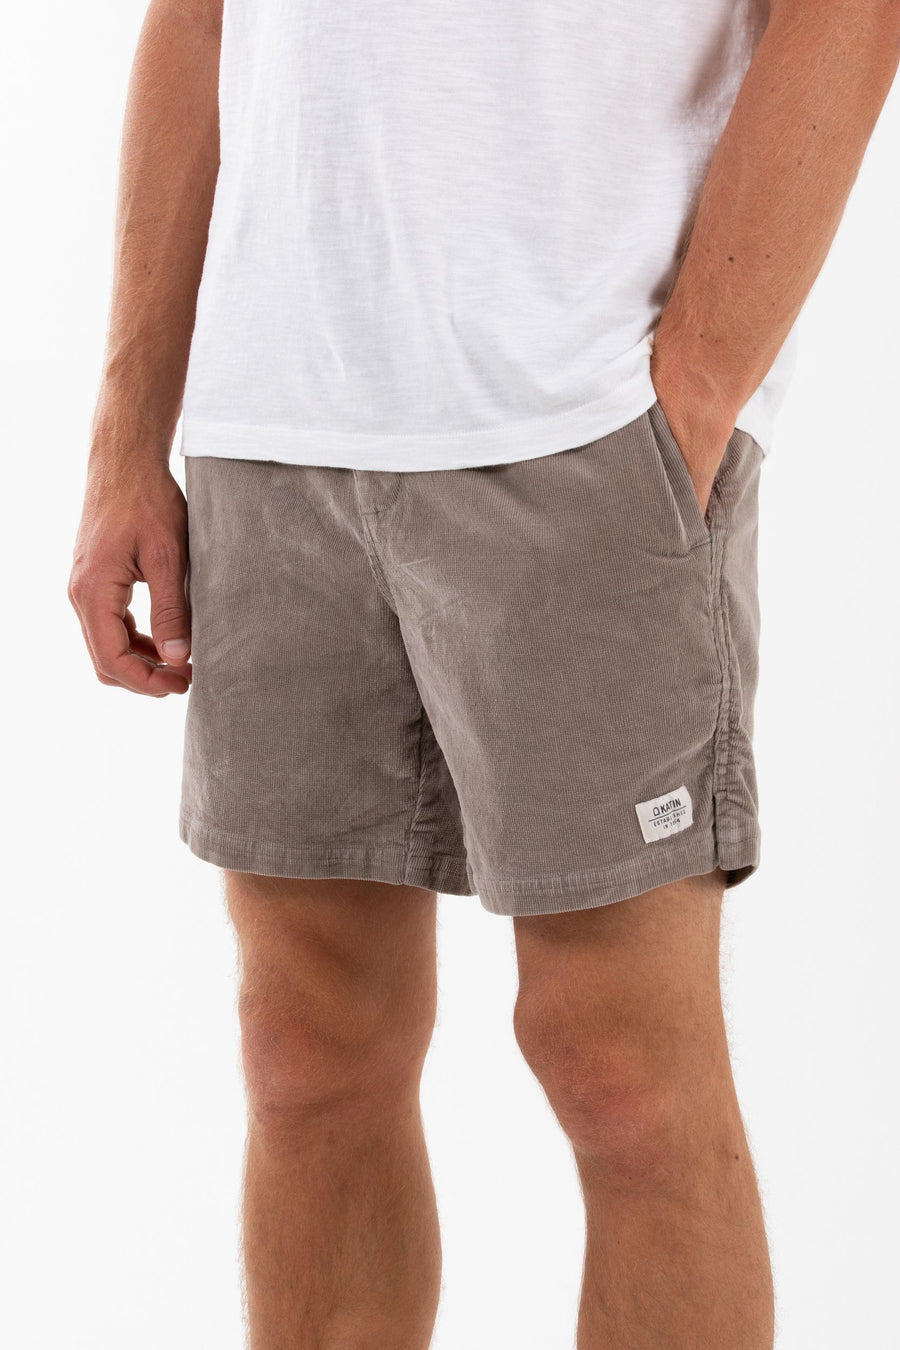 Katin Cord Local Short - Mens General Katin S Warm Grey